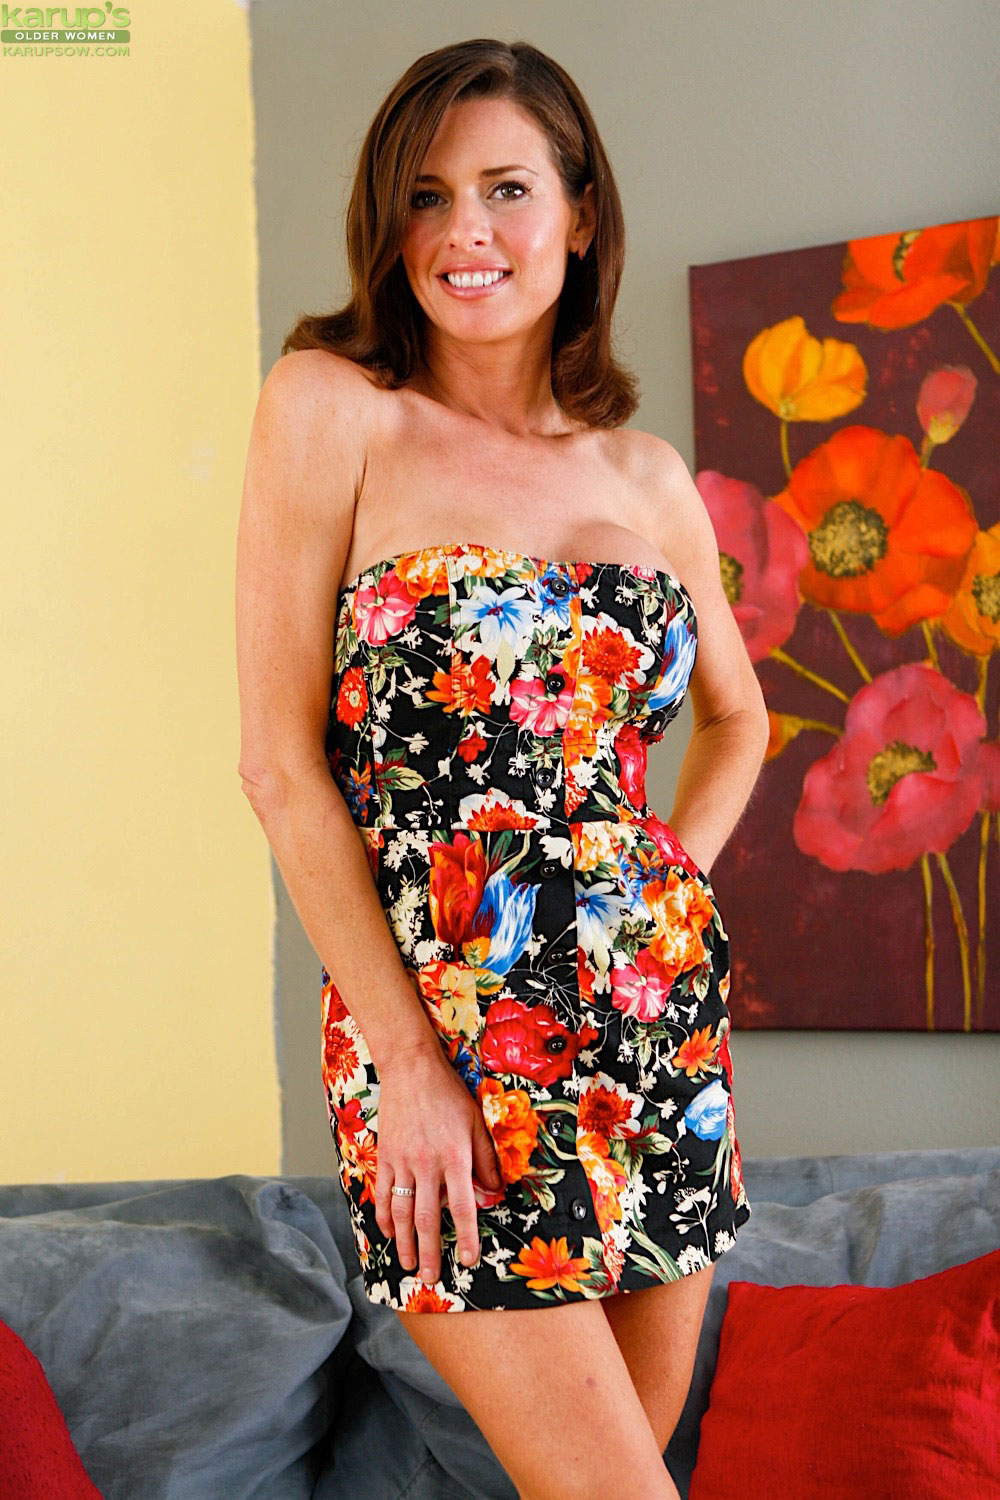 Veronica avluv is a thirsty kitty 6